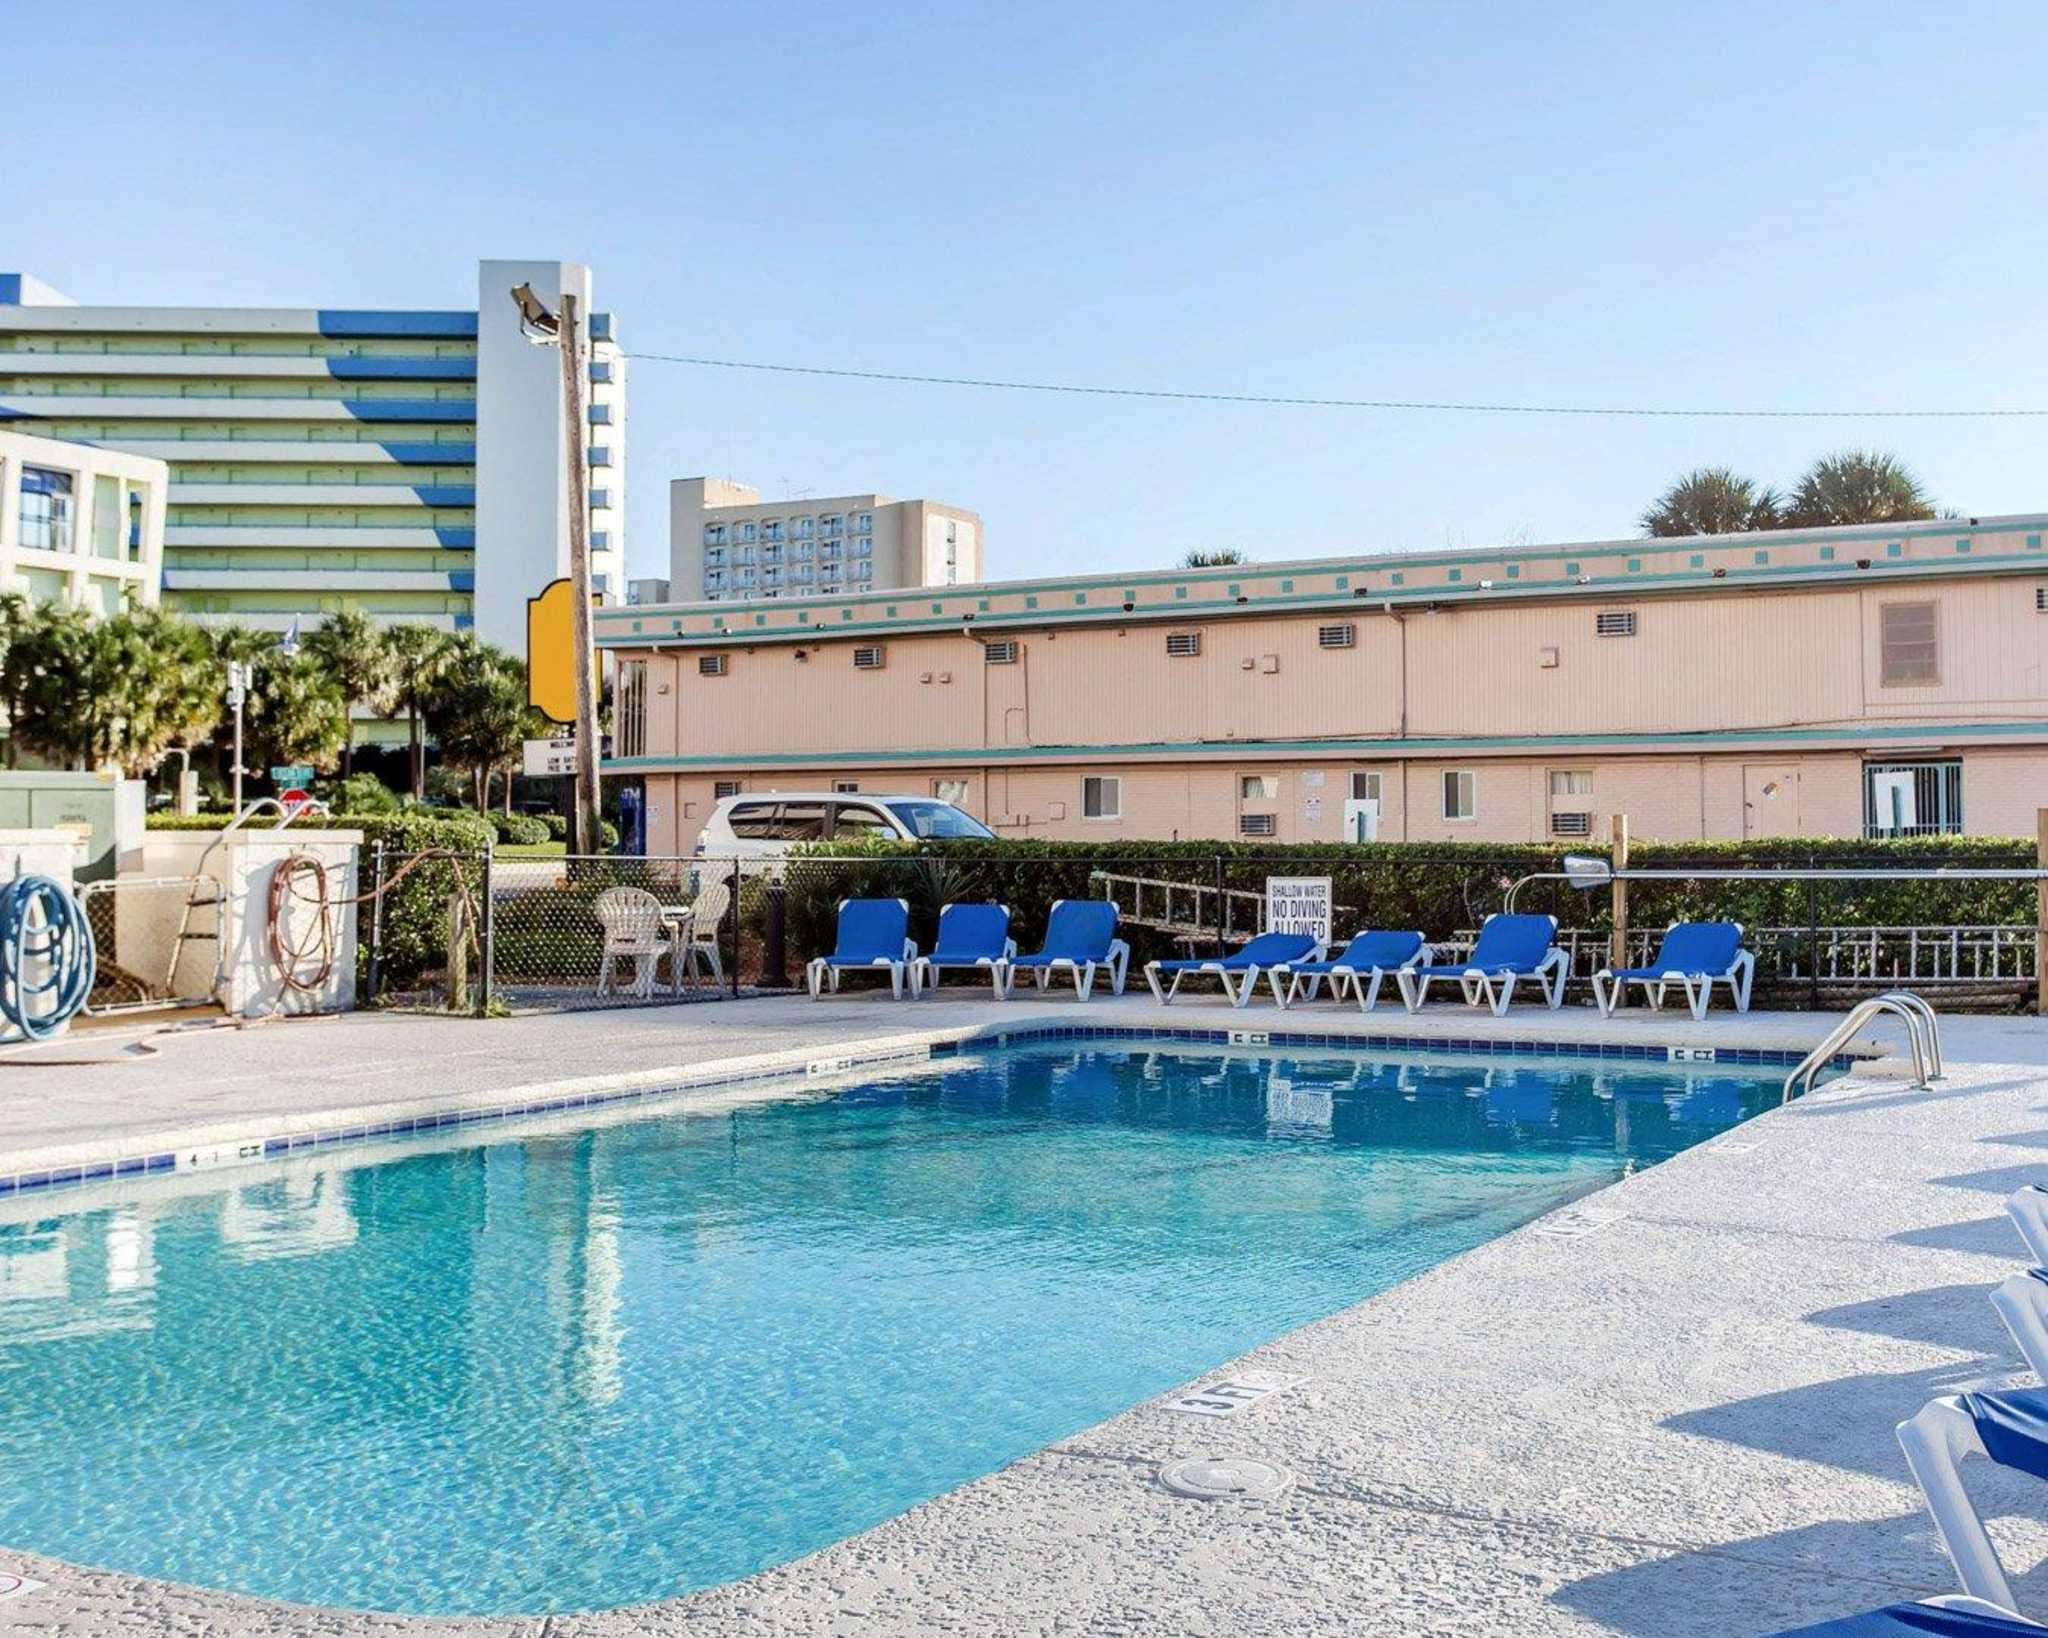 Two Bedroom Suites In San Francisco Quality Inn Amp Suites Coupons Near Me In Myrtle Beach